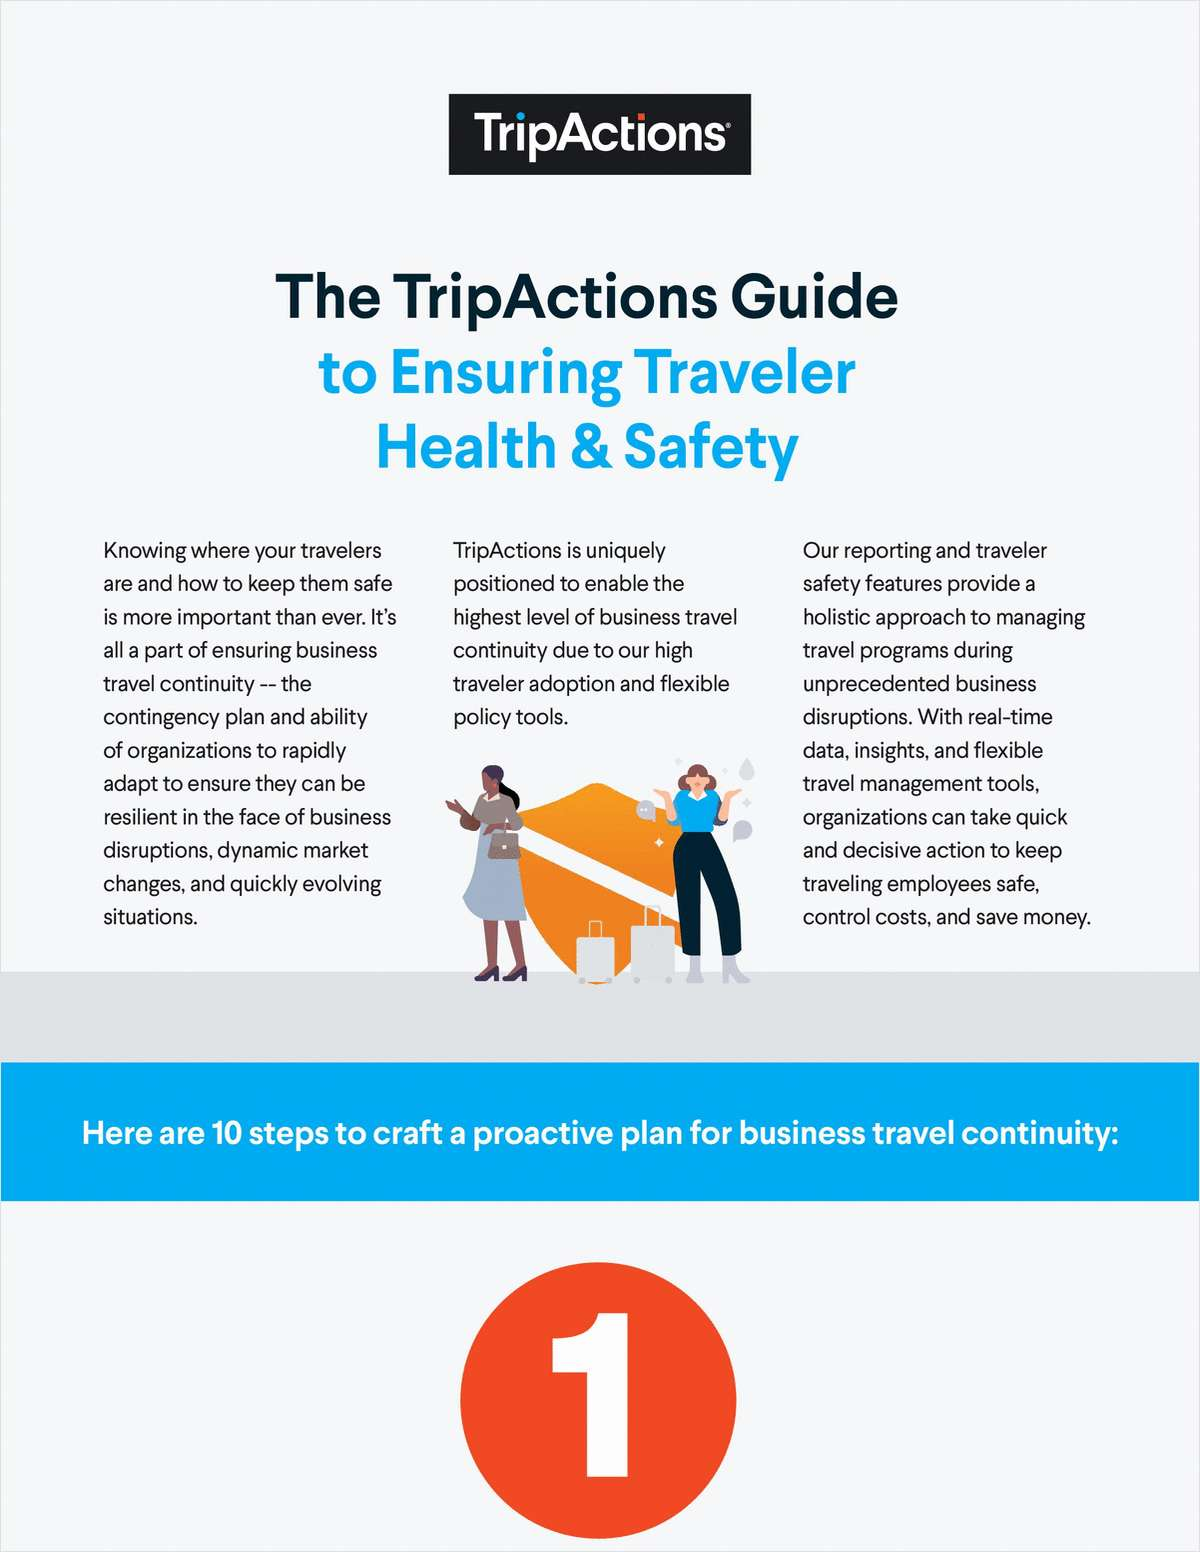 The TripActions Guide to Ensuring Traveler Health & Safety